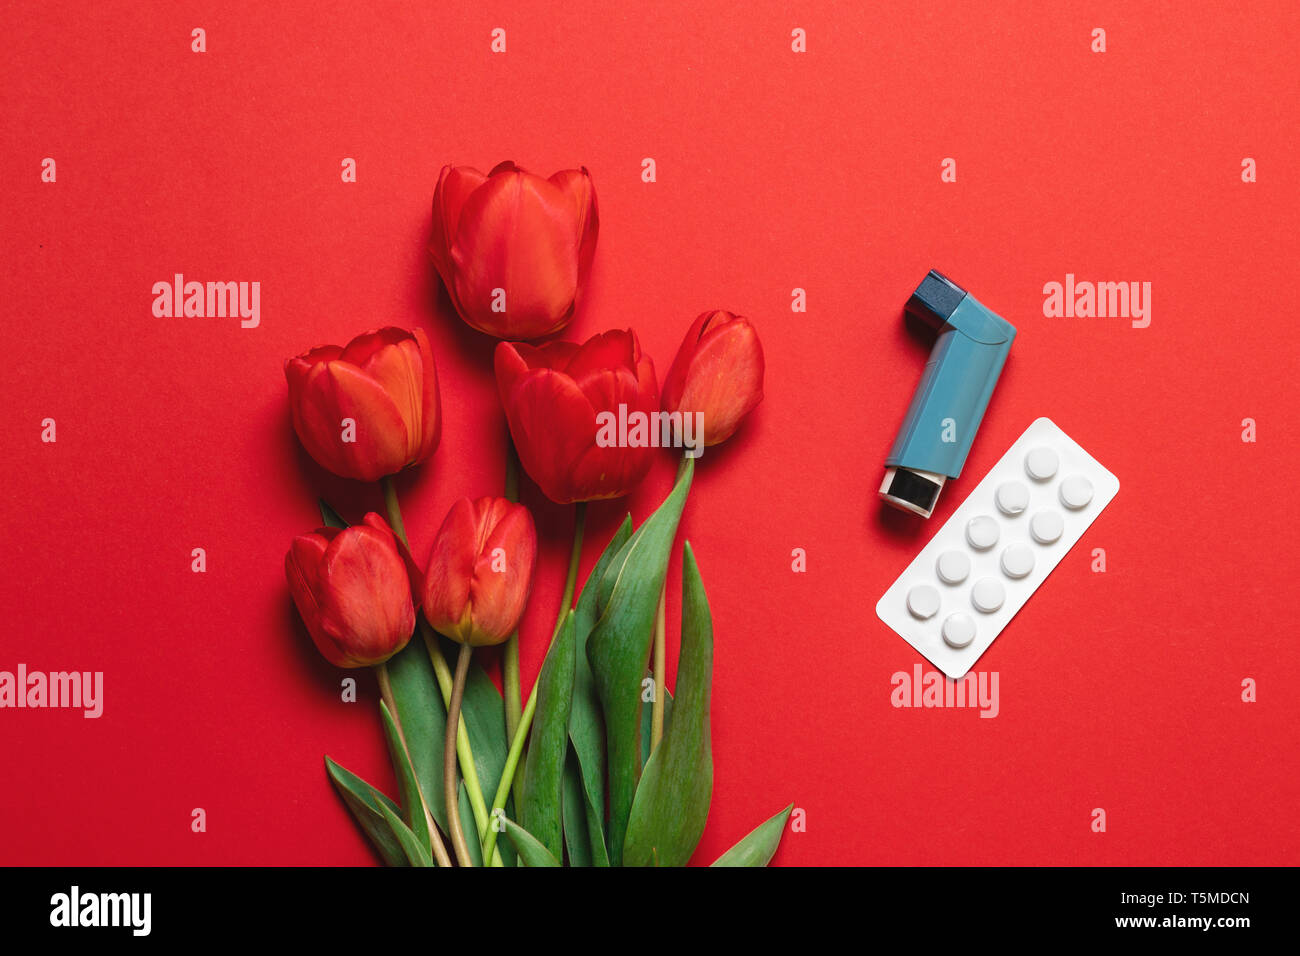 Asthma inhaler and bouquet of flowers with copy space - Stock Image